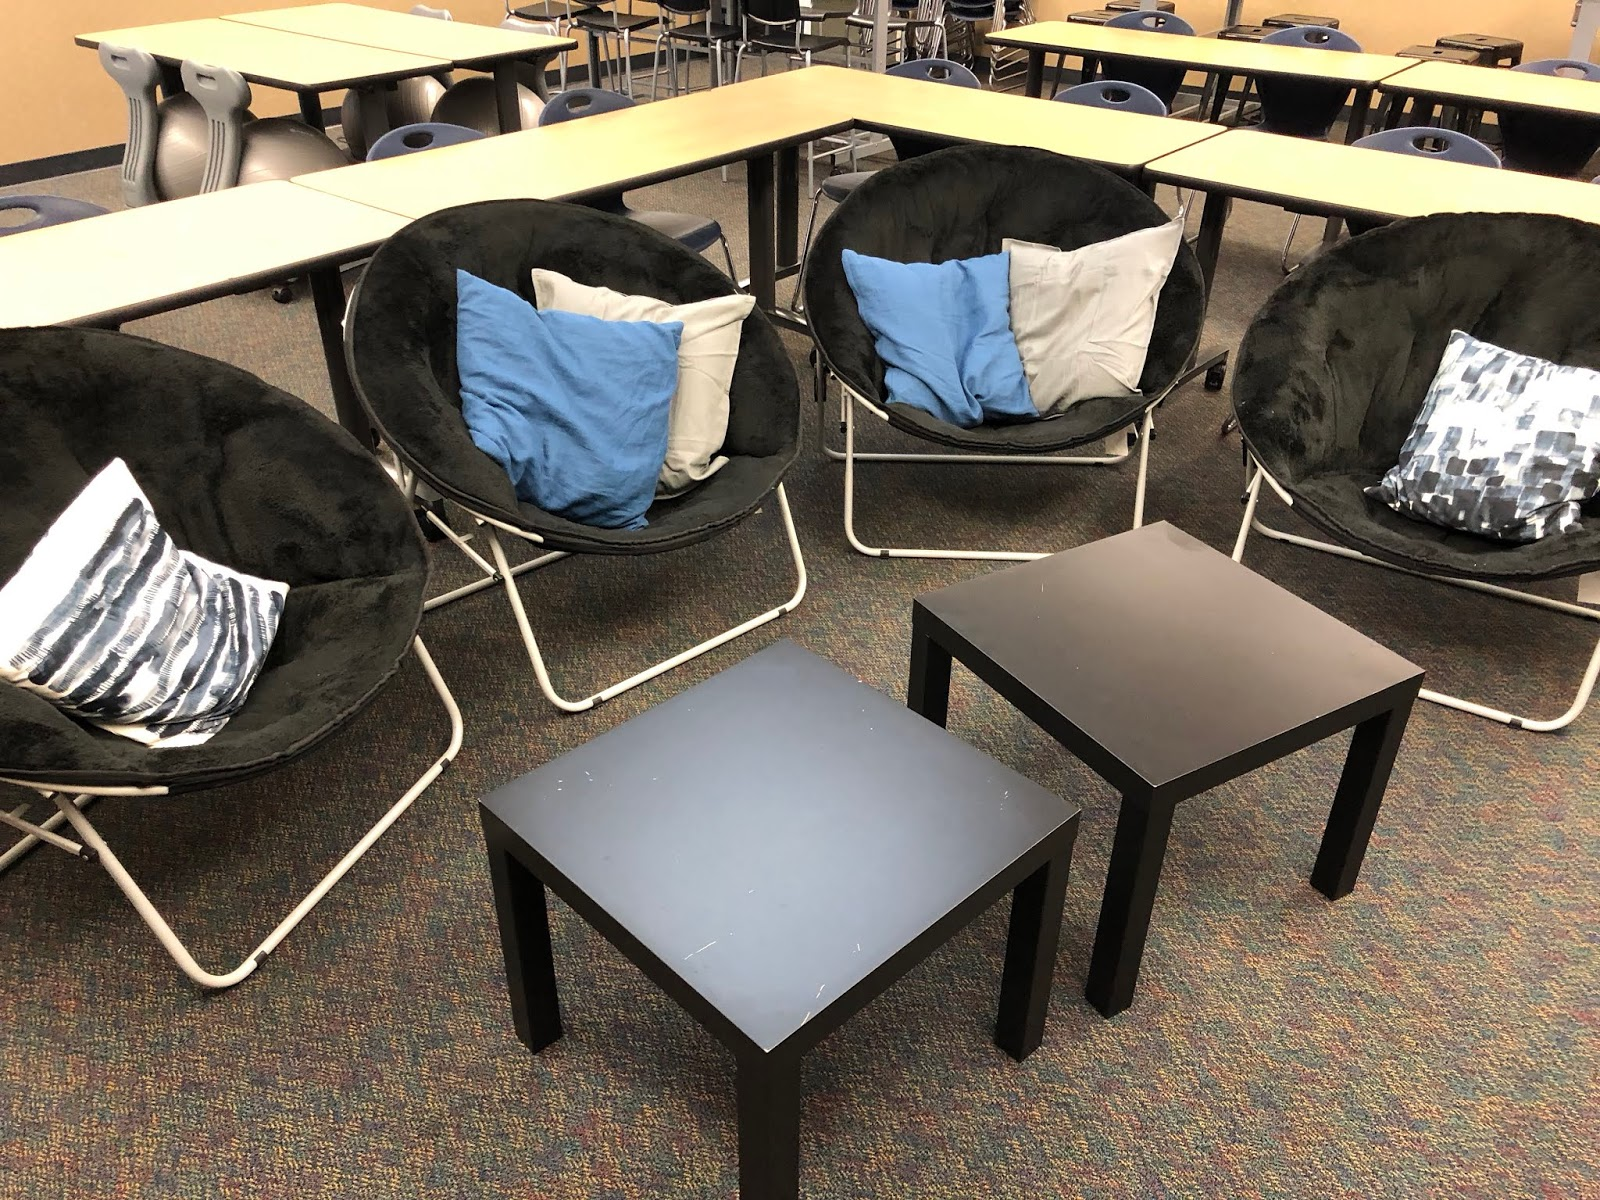 Brilliant Educational Technology In The History Classroom Alphanode Cool Chair Designs And Ideas Alphanodeonline